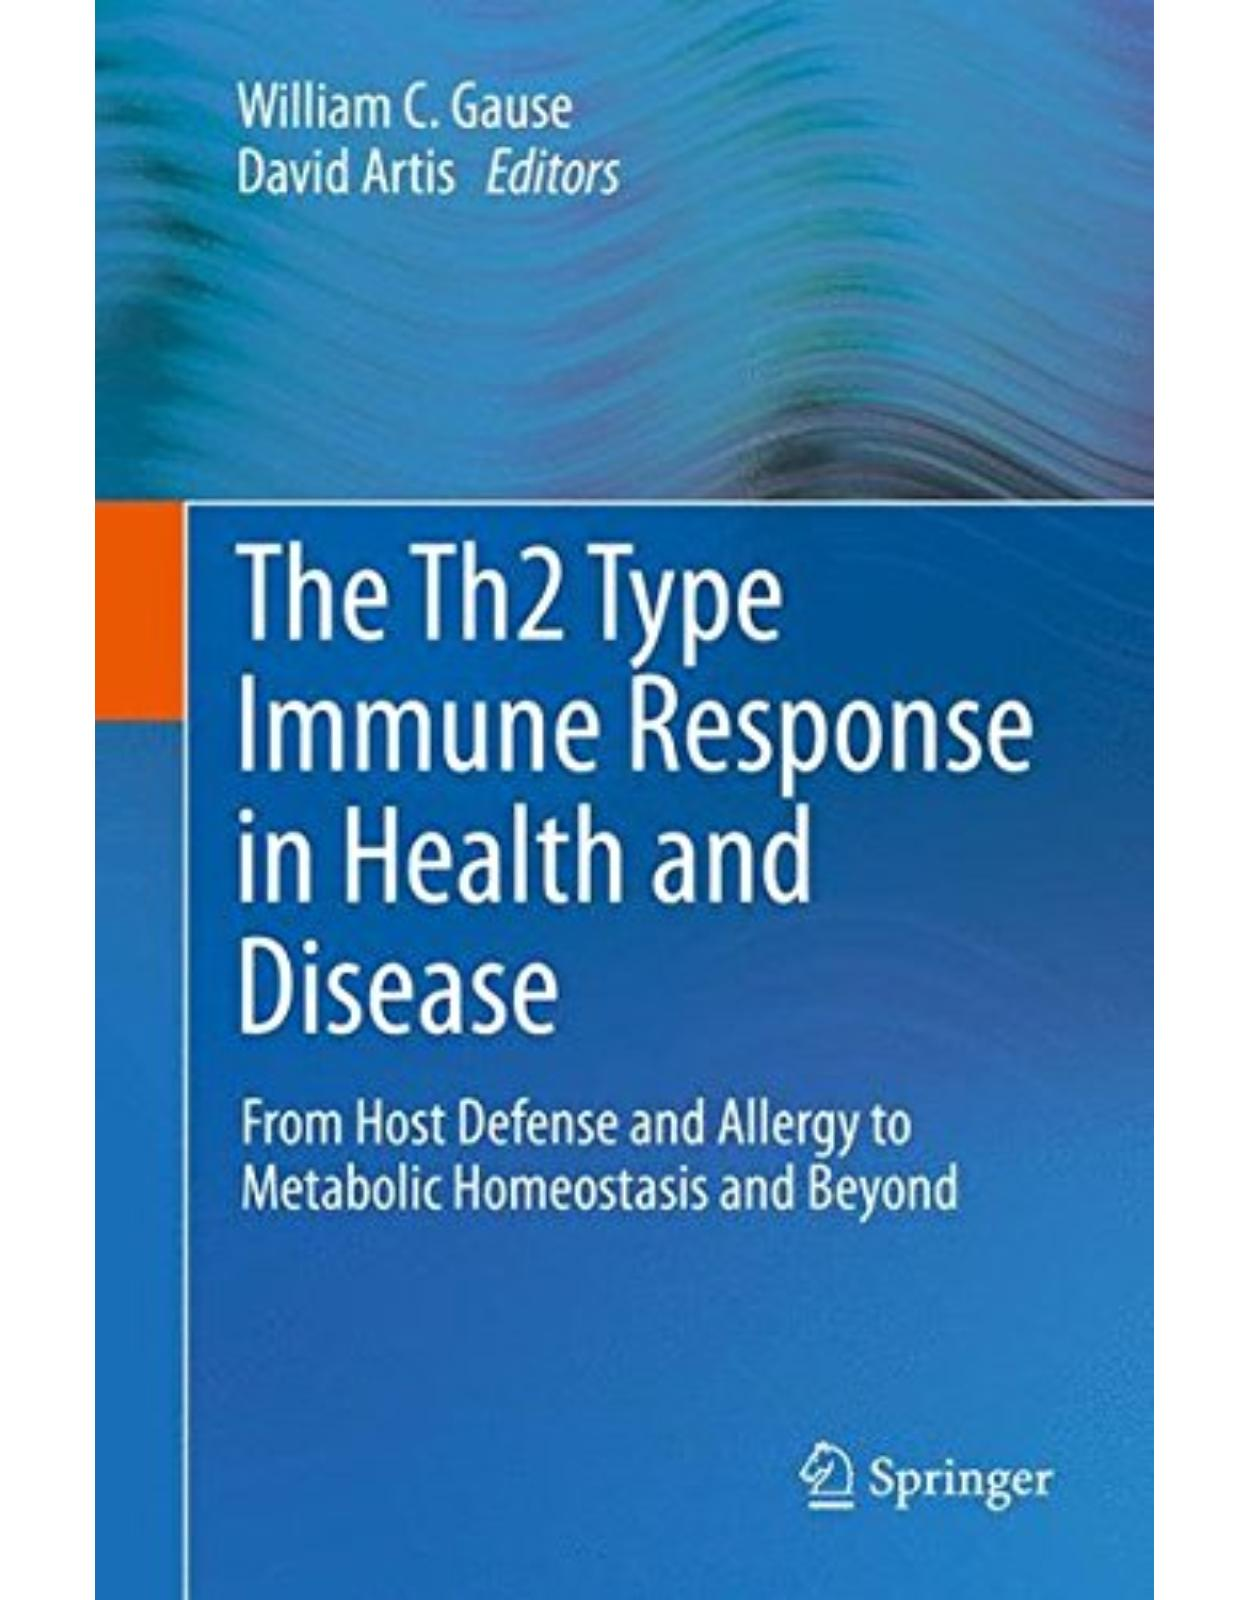 The Th2 Type Immune Response in Health and Disease: From Host Defense and Allergy to Metabolic Homeostasis and Beyond